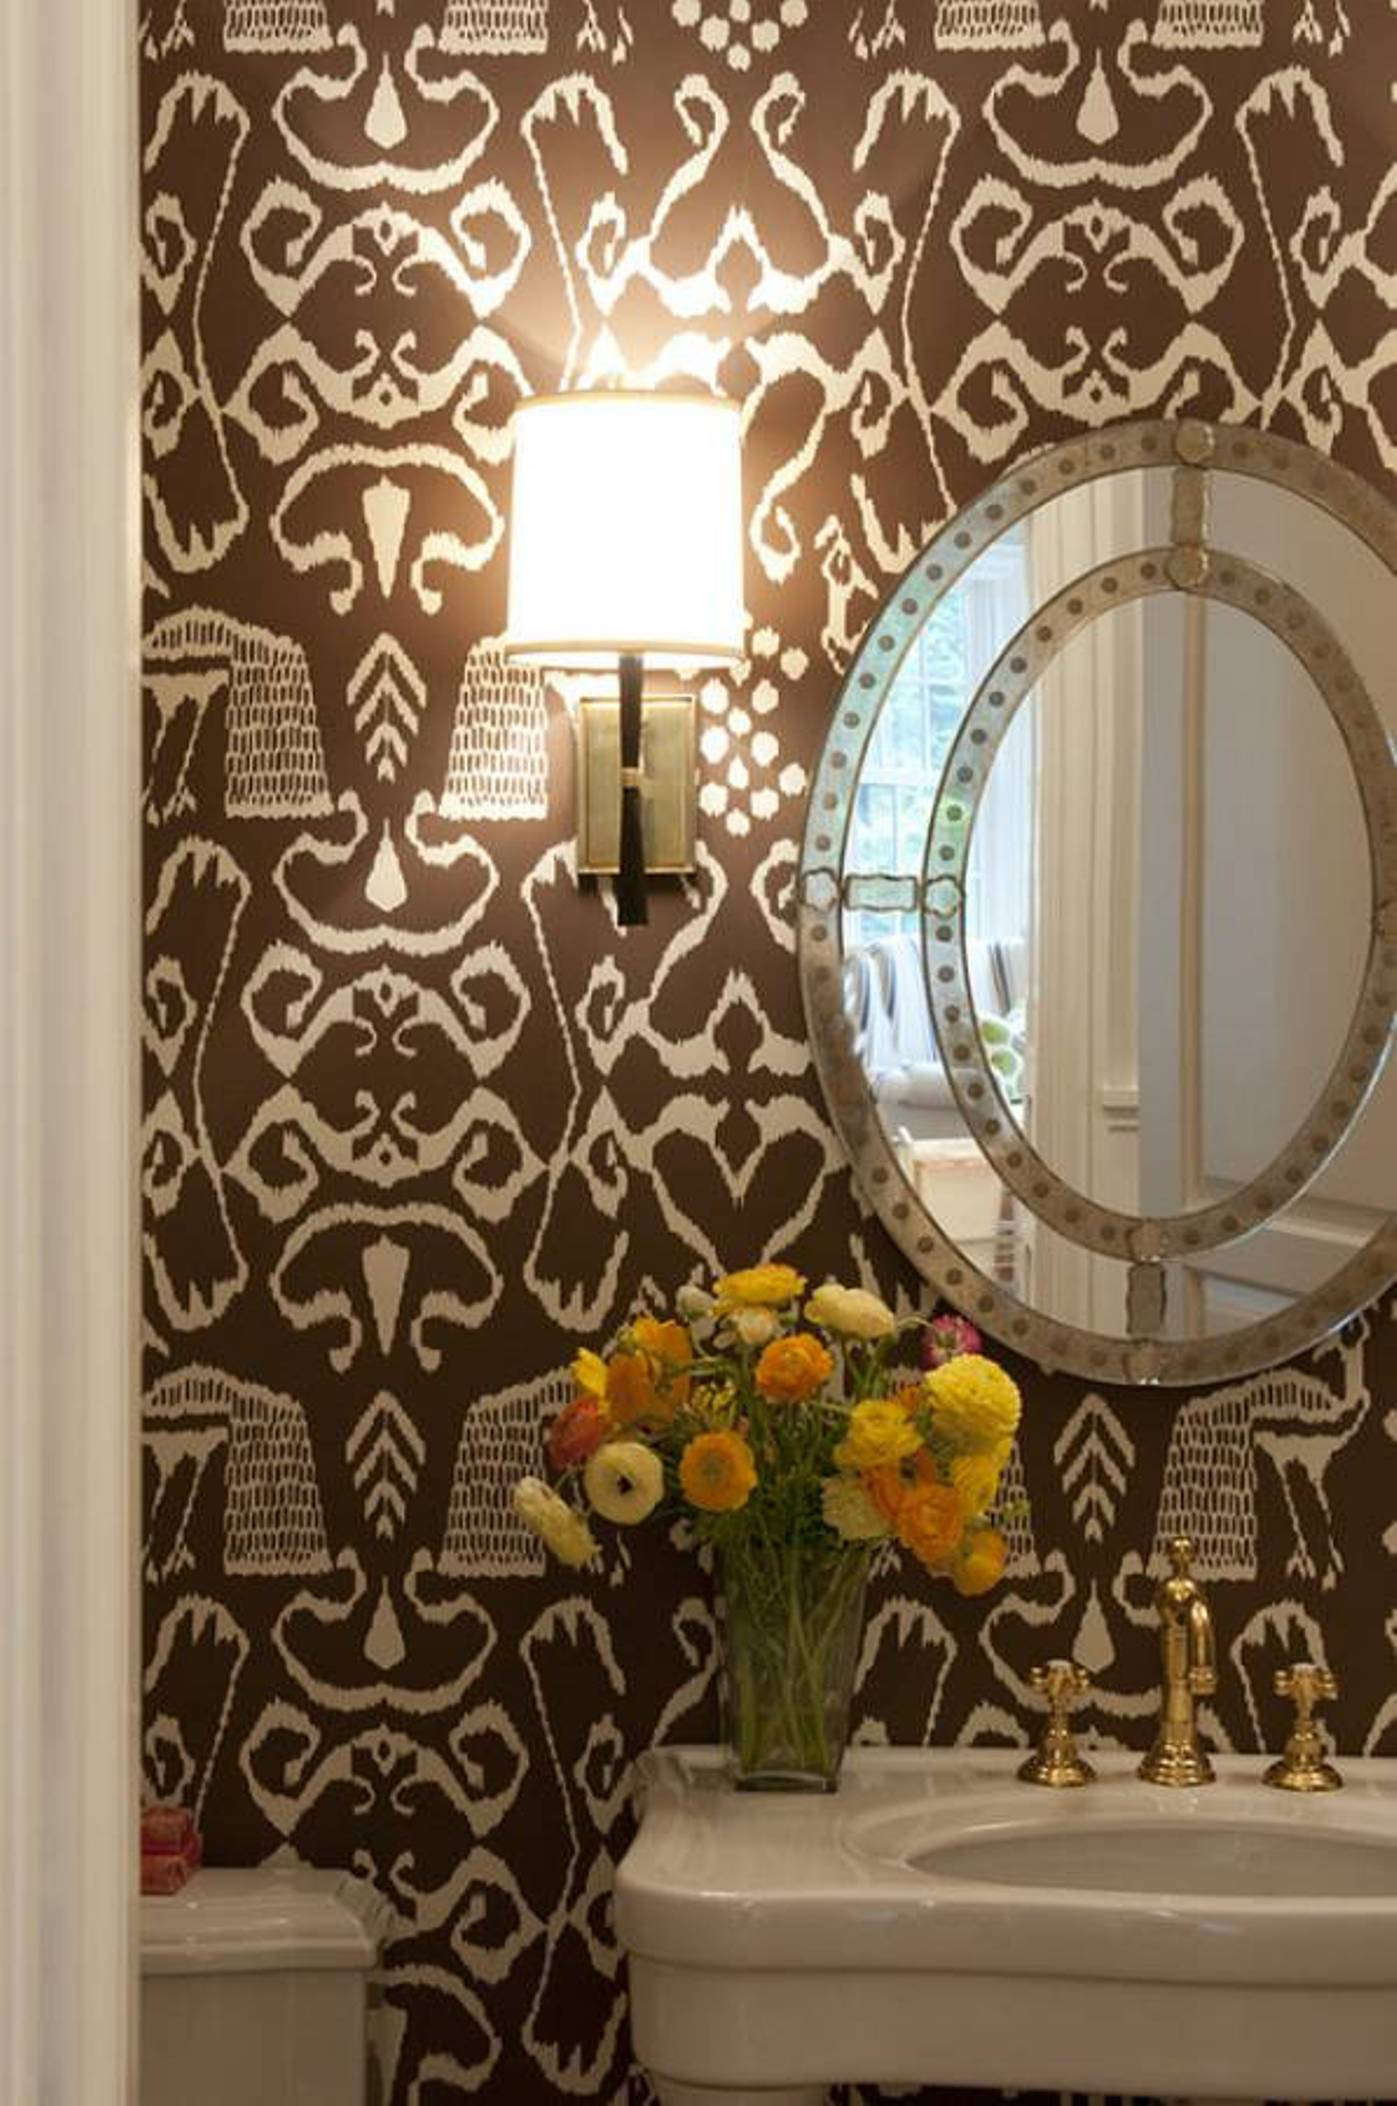 bathroom wallpaper - China Seas Bali II in brown in a powder room - Julie Nightingale Design via Atticmag